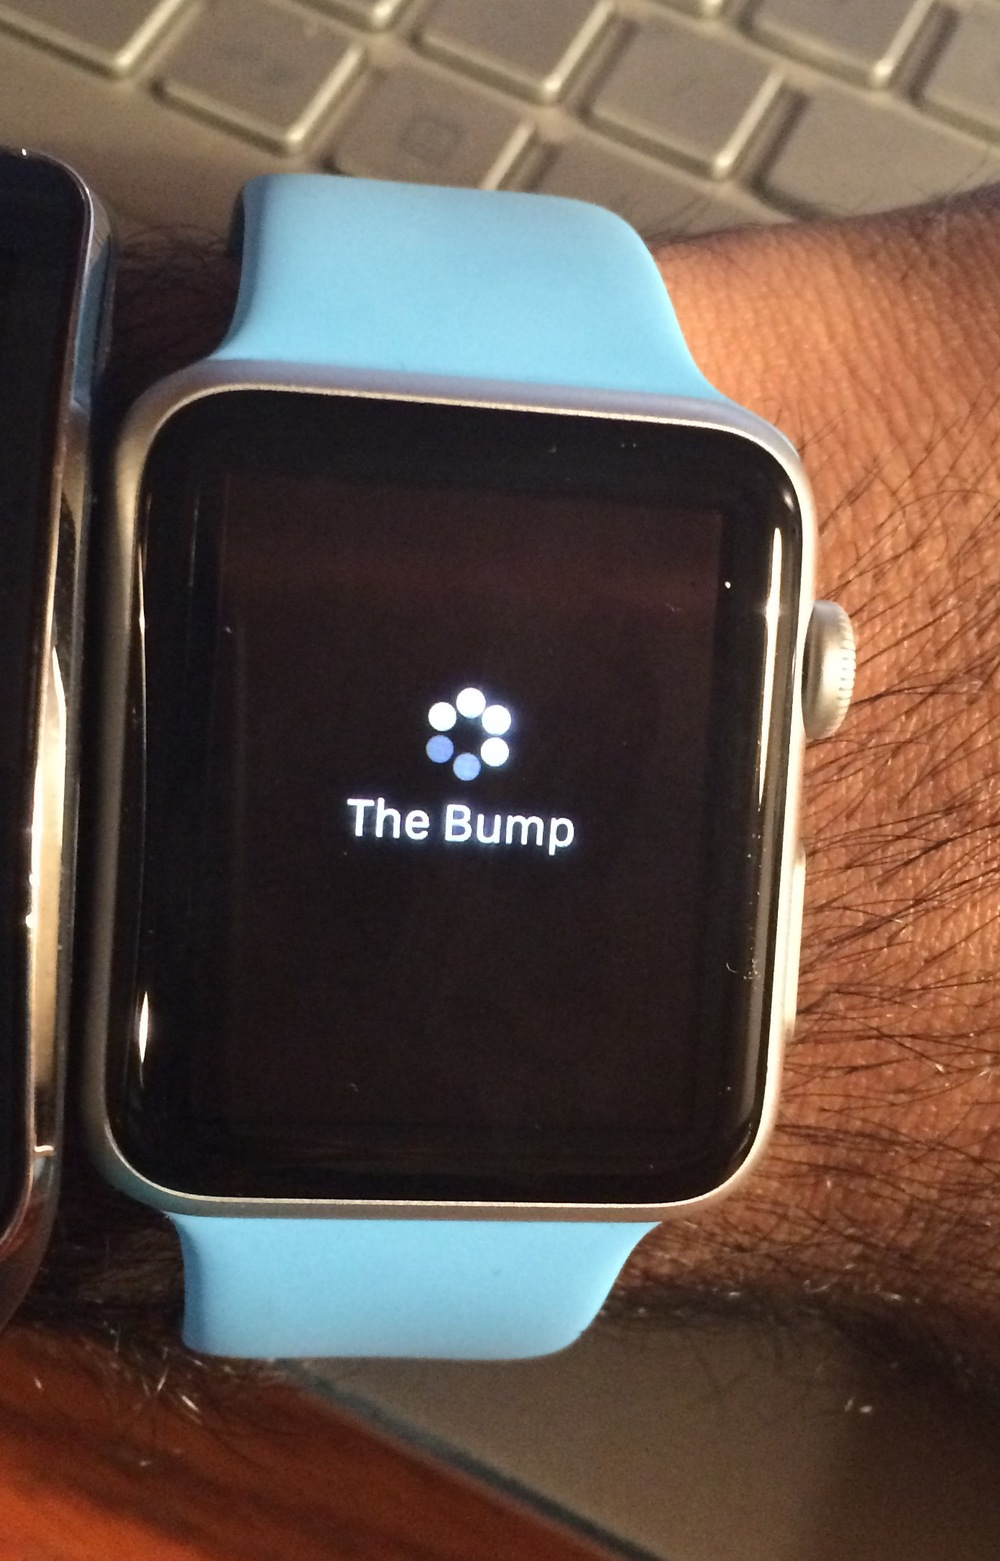 The Bump is an app for pregnant women - this is the screen you see for several seconds as the app loads